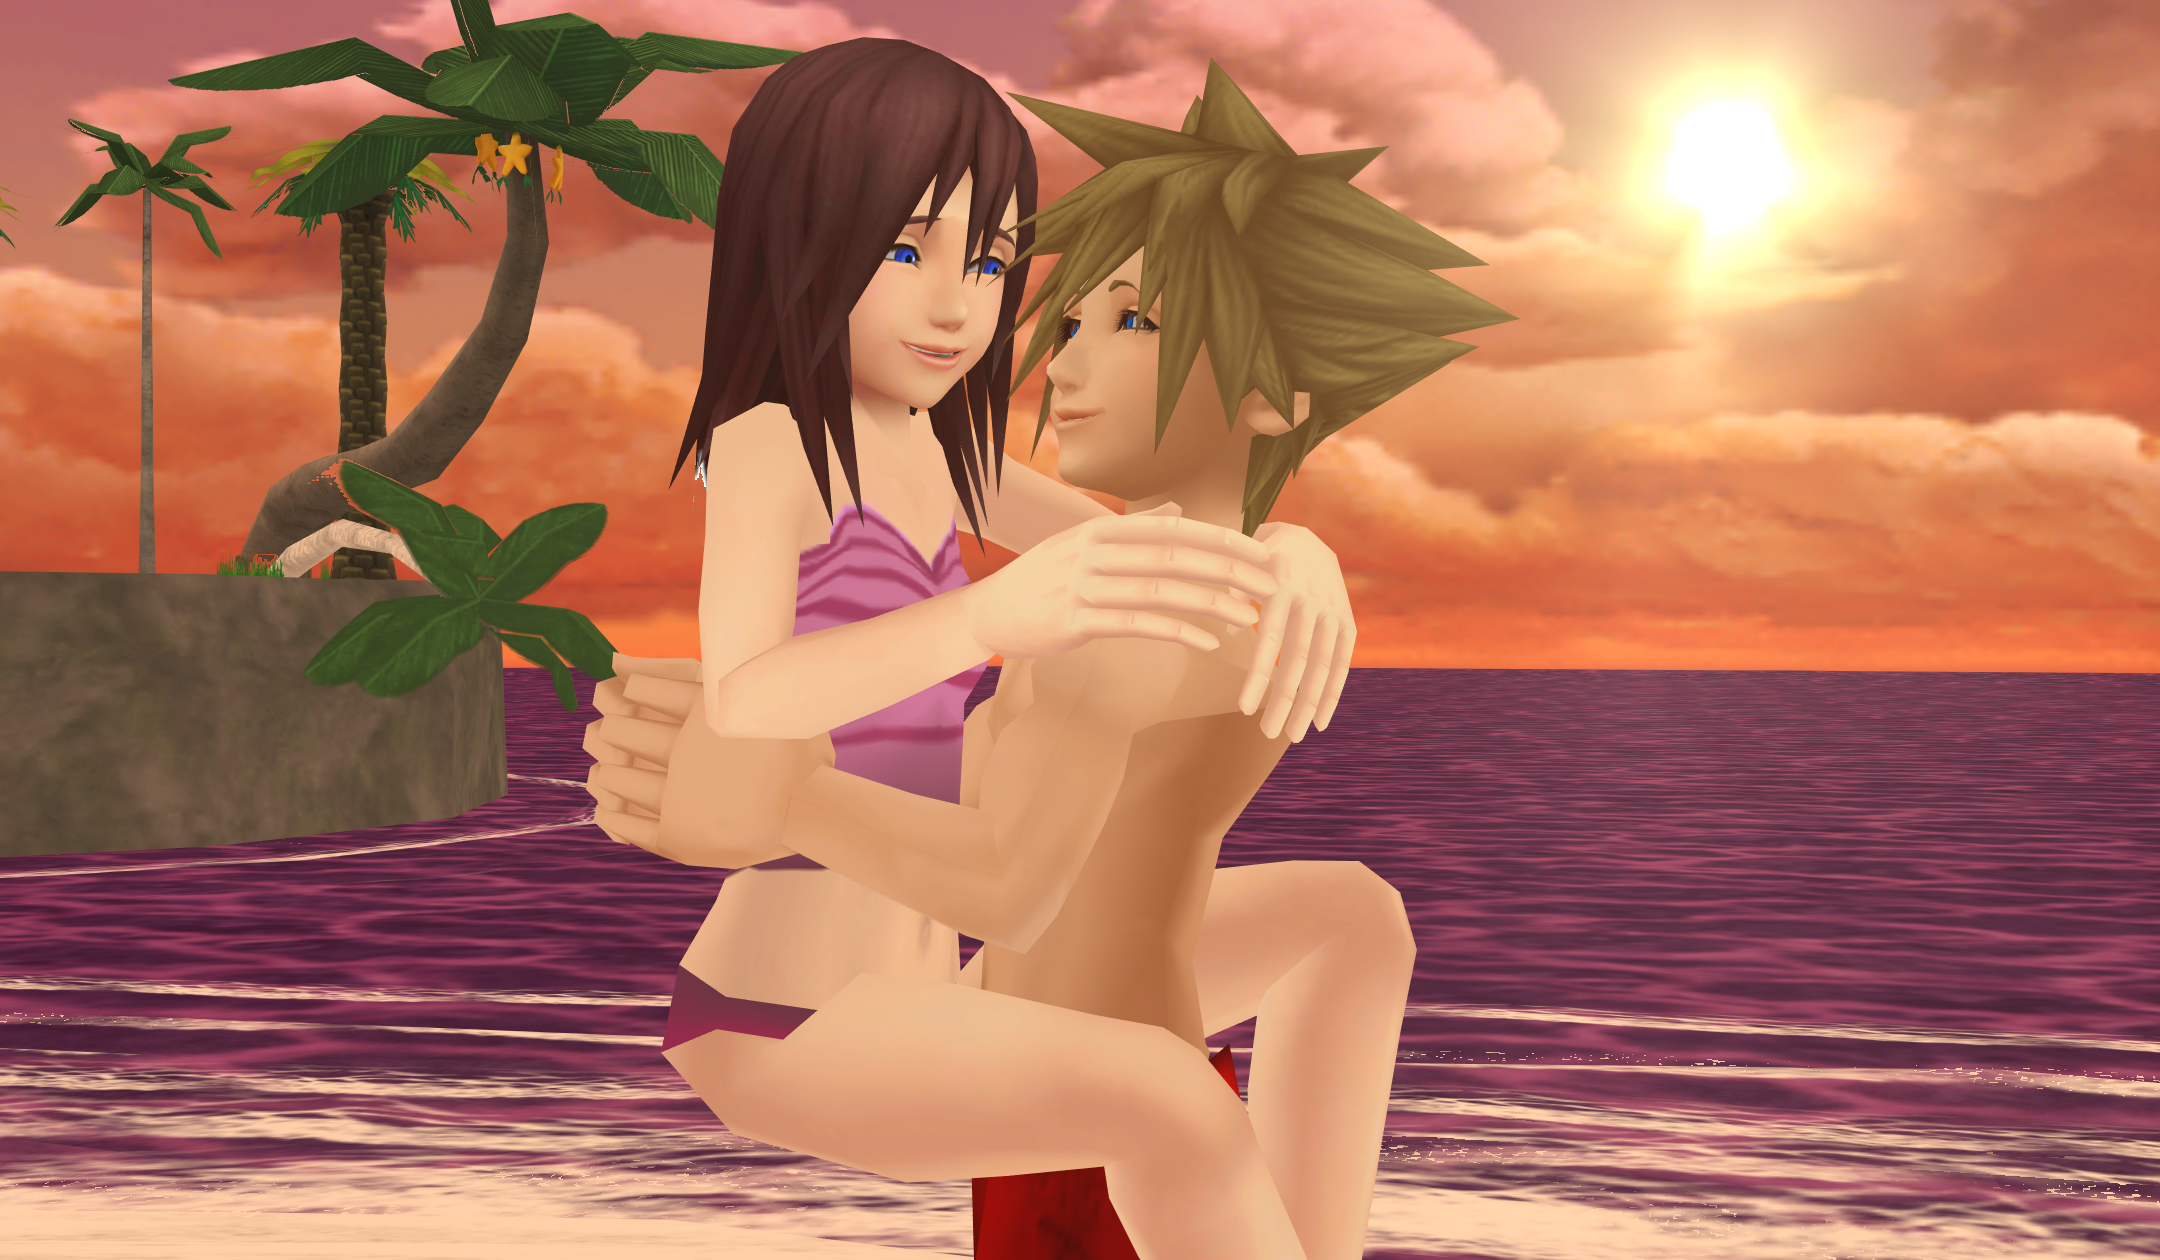 zz Happiness Sora and Kairi beach, pwani siku zz